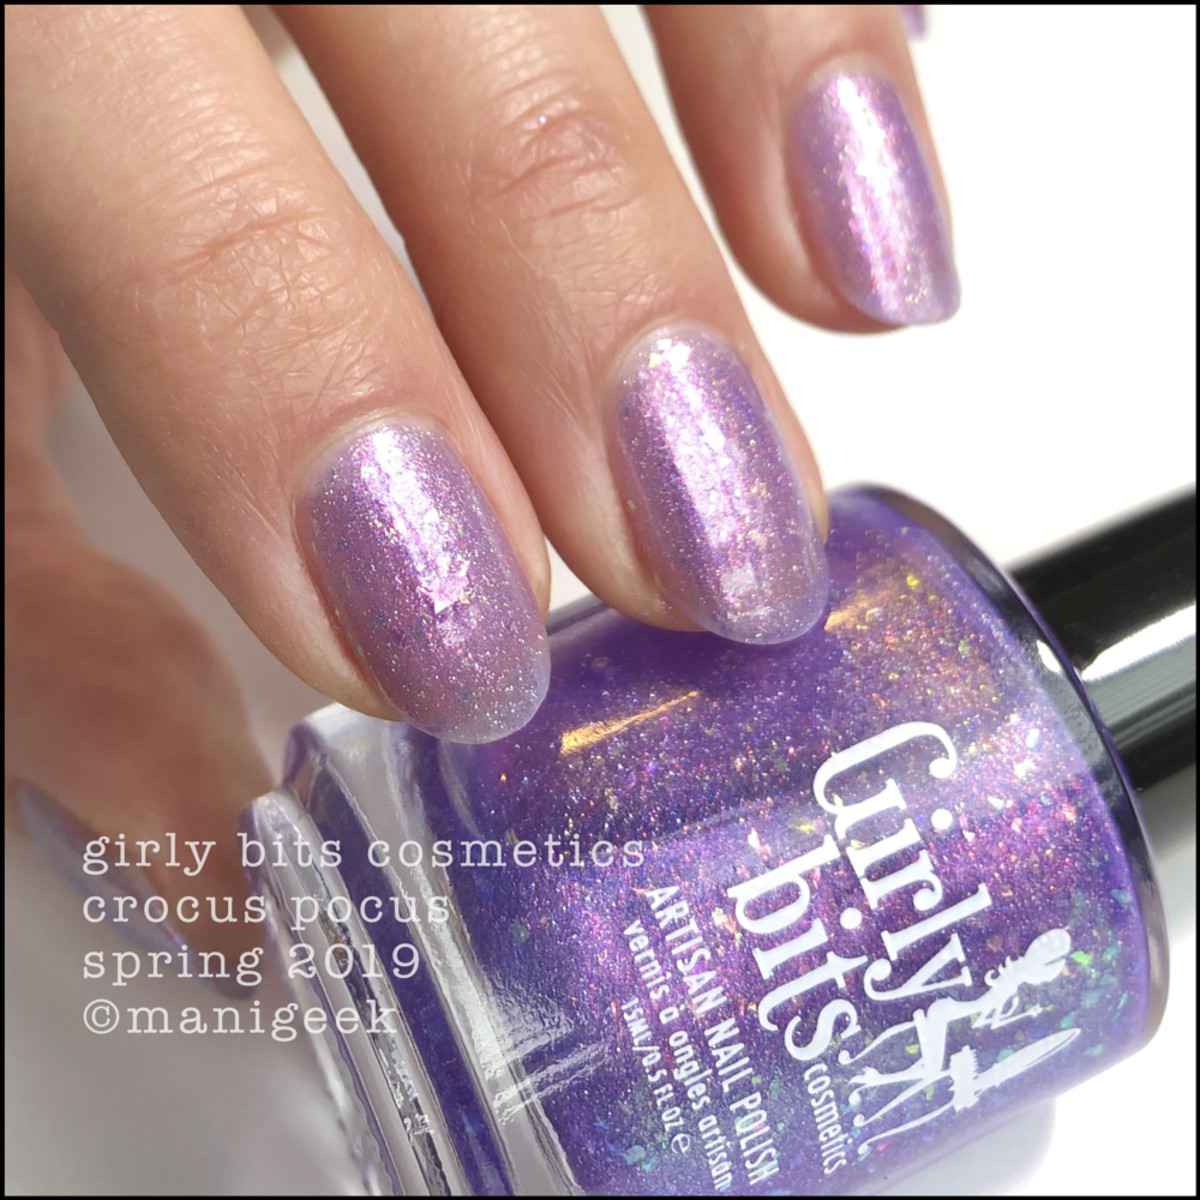 Girly Bits Crocus Pocus - Girly Bits Cosmetics Spring 2019 Collection